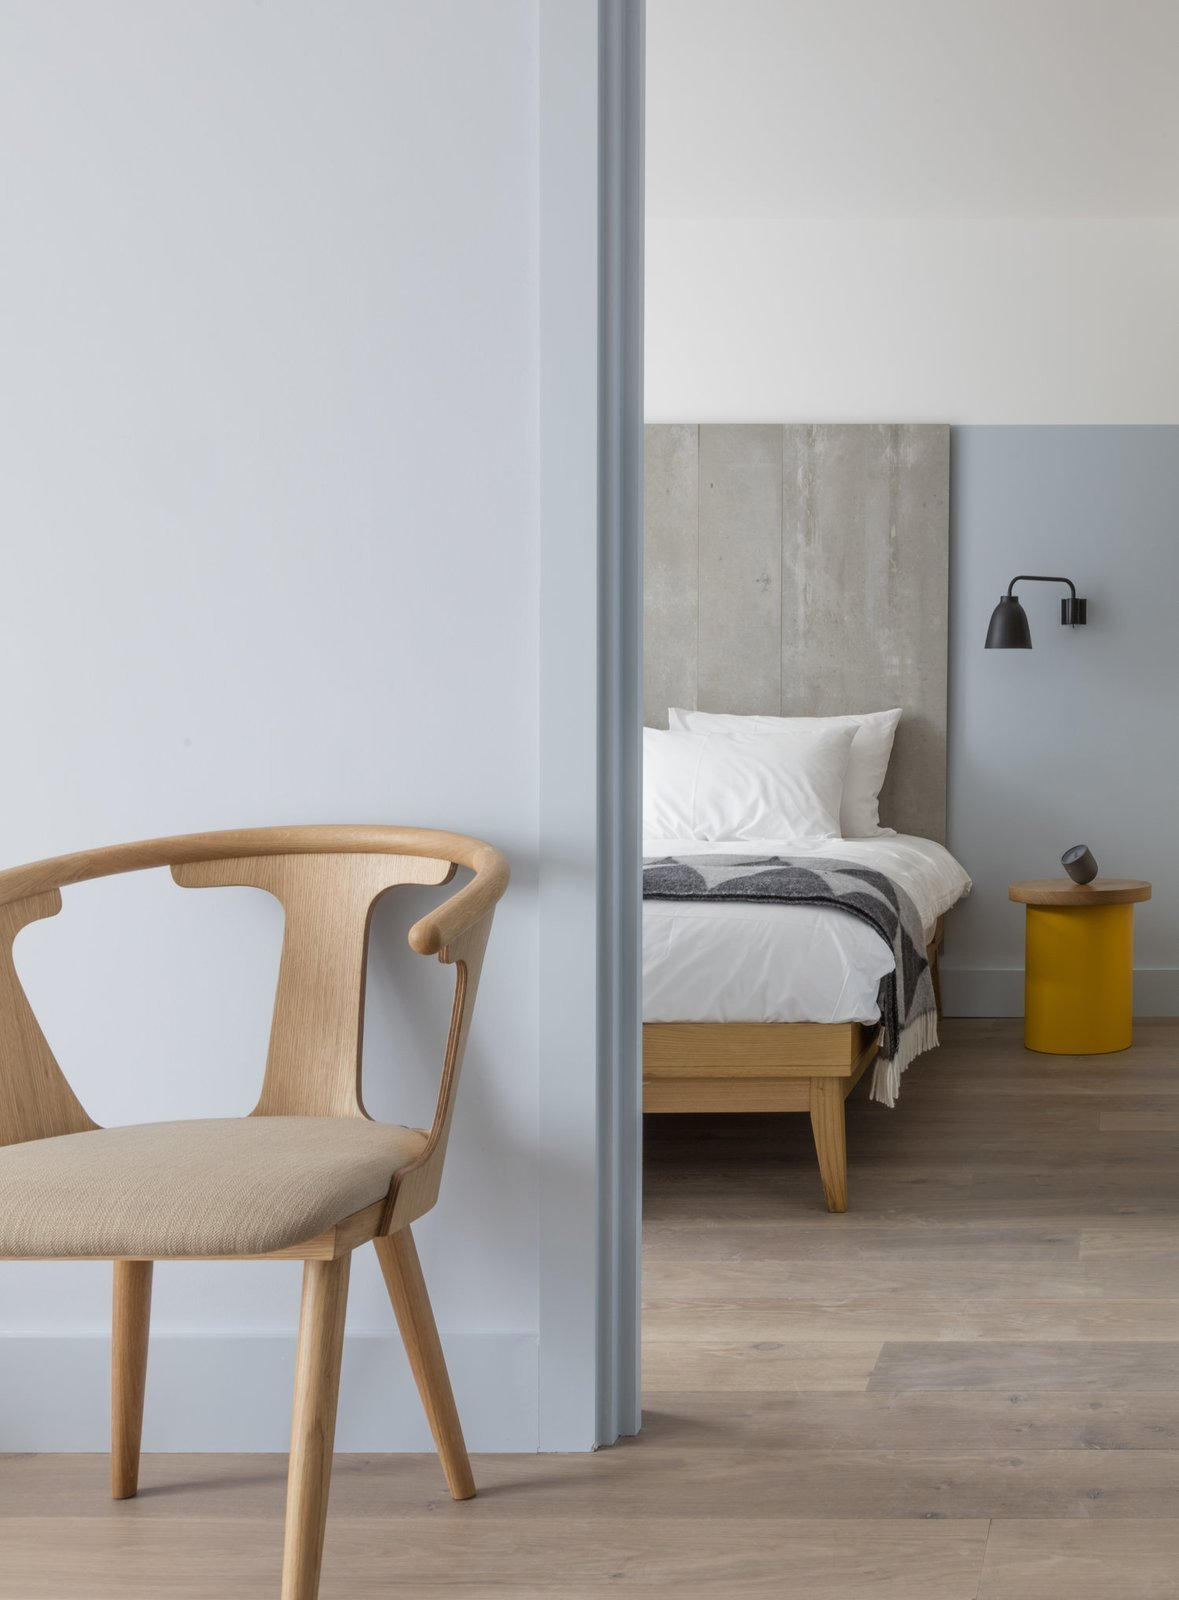 Designed by Grzywinski+Pons, Leman Locke London is a service apartment style hotel that has furniture items like retractable desks and flip-up tables to make the most of space.